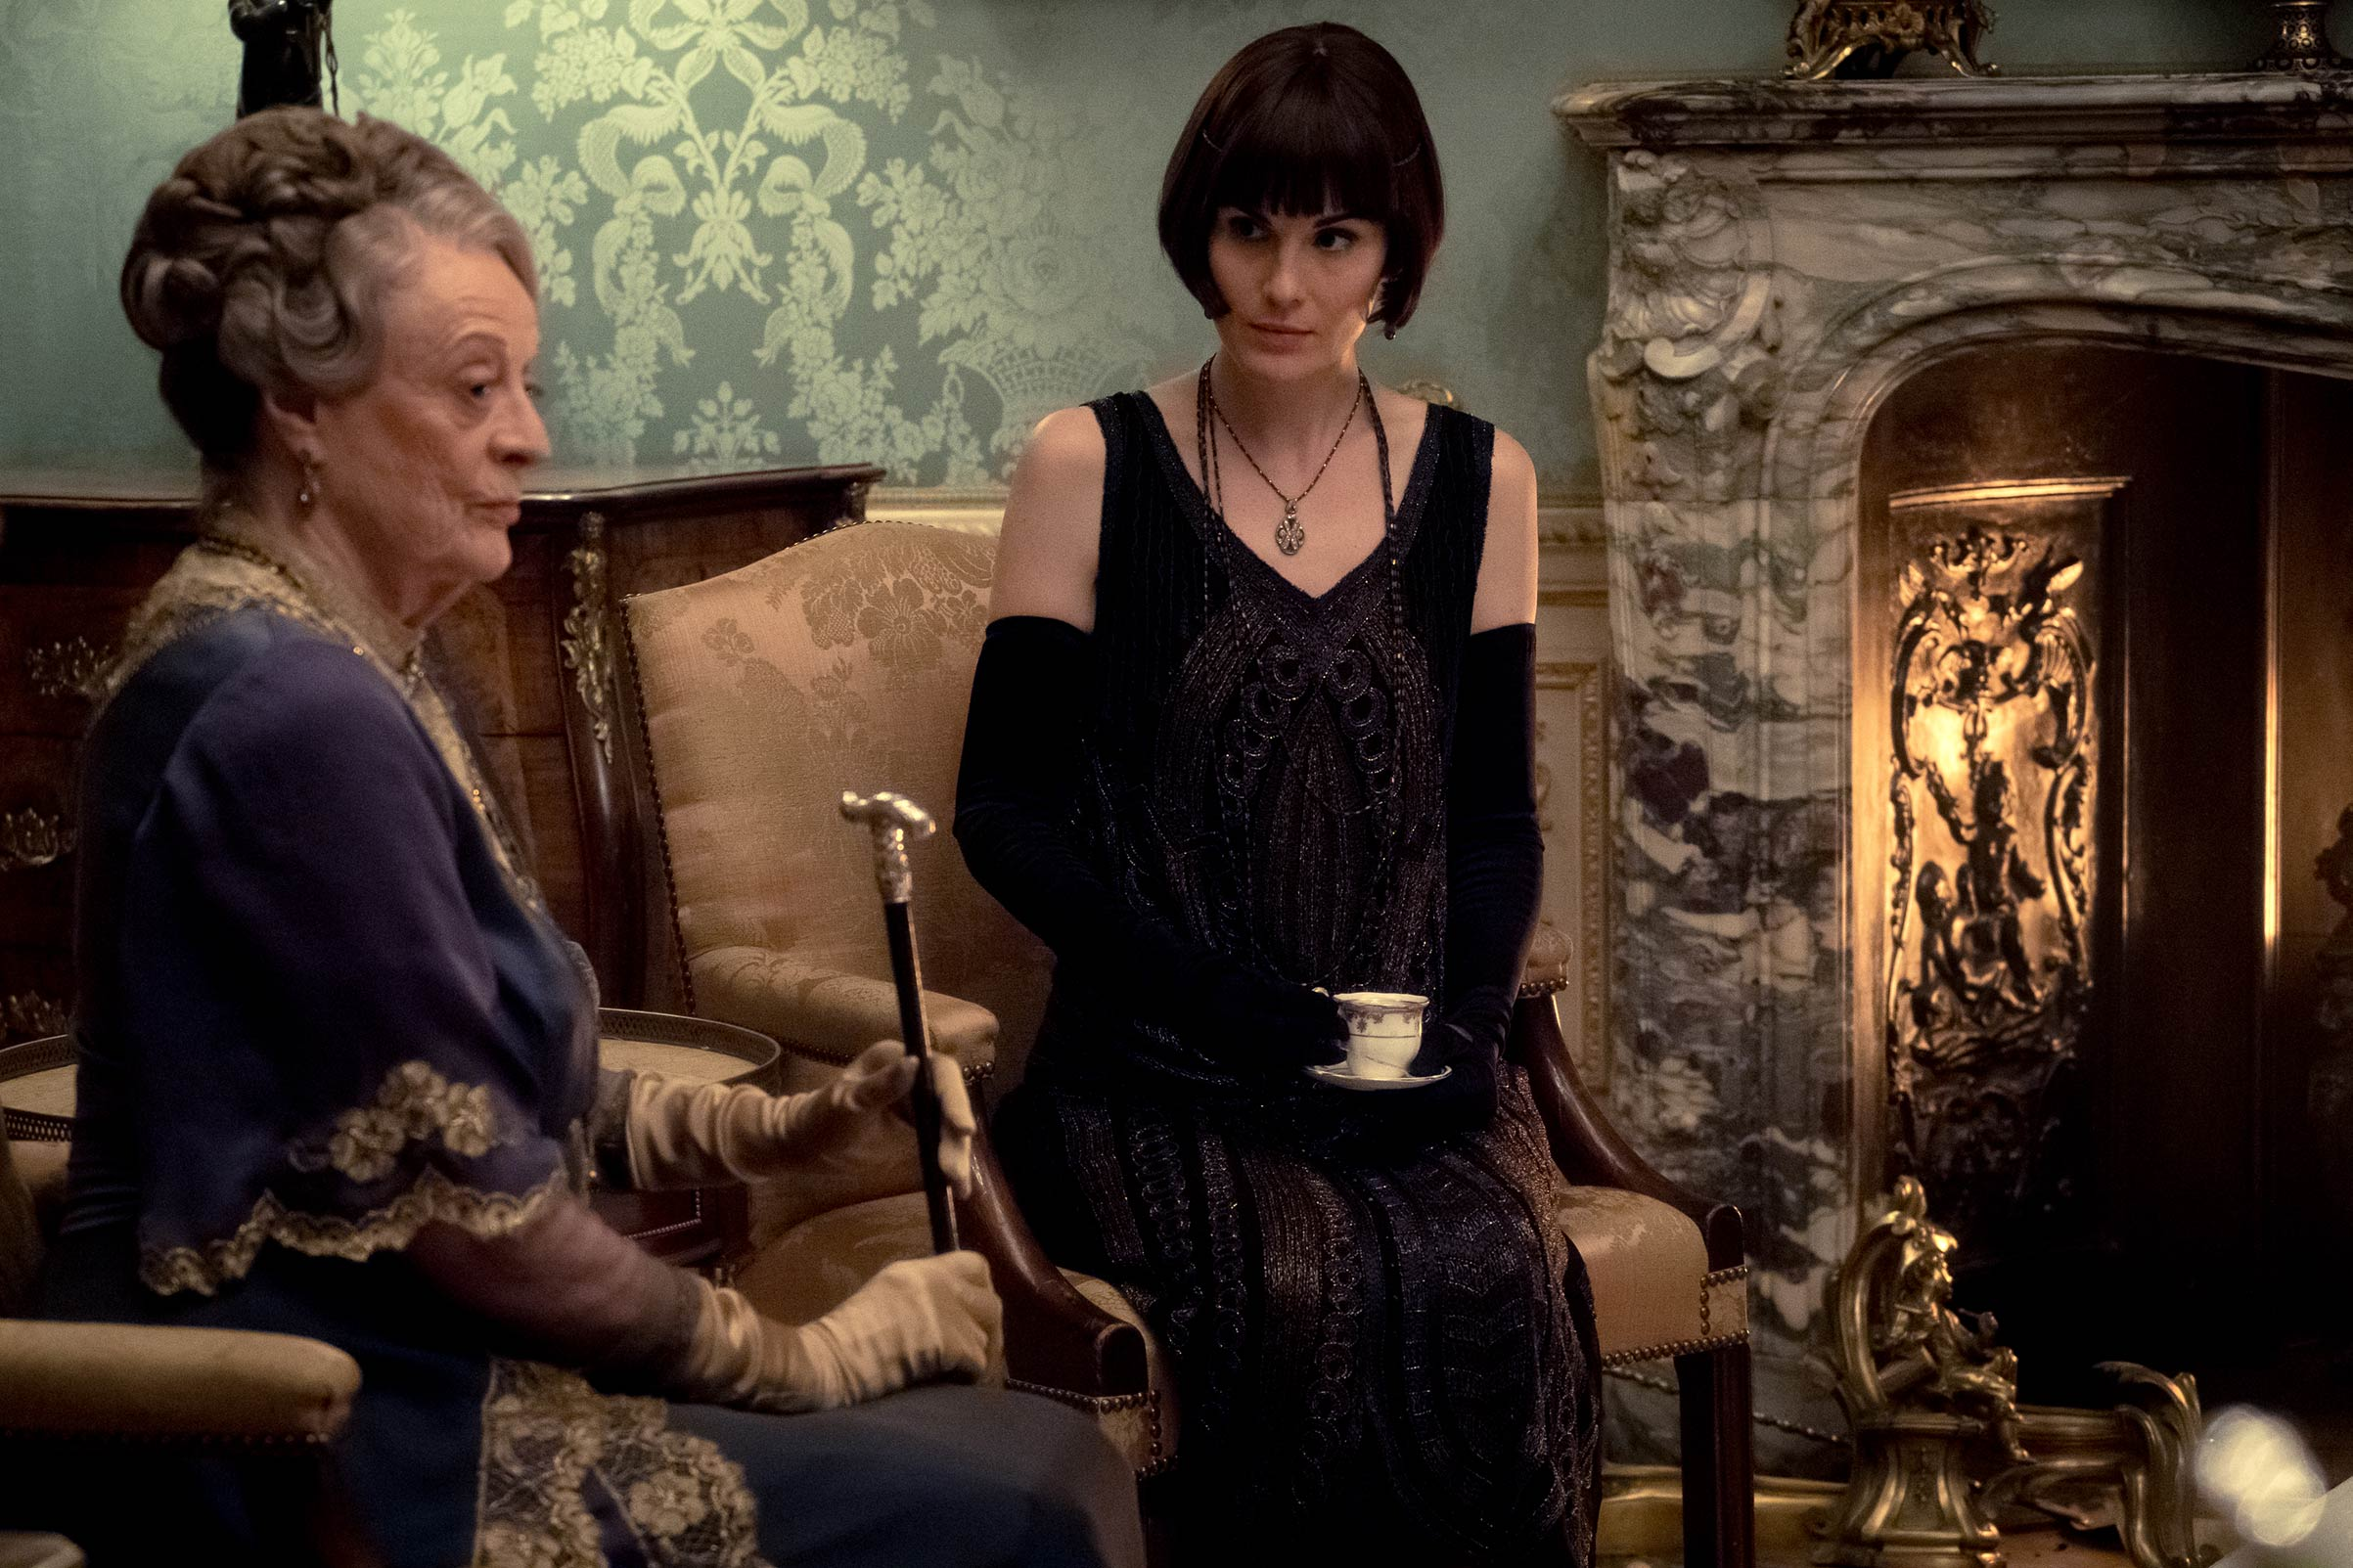 Maggie Smith (left) stars as Violet Crawley and Michelle Dockery as Lady Mary in the 2019 movie Downton Abbey.